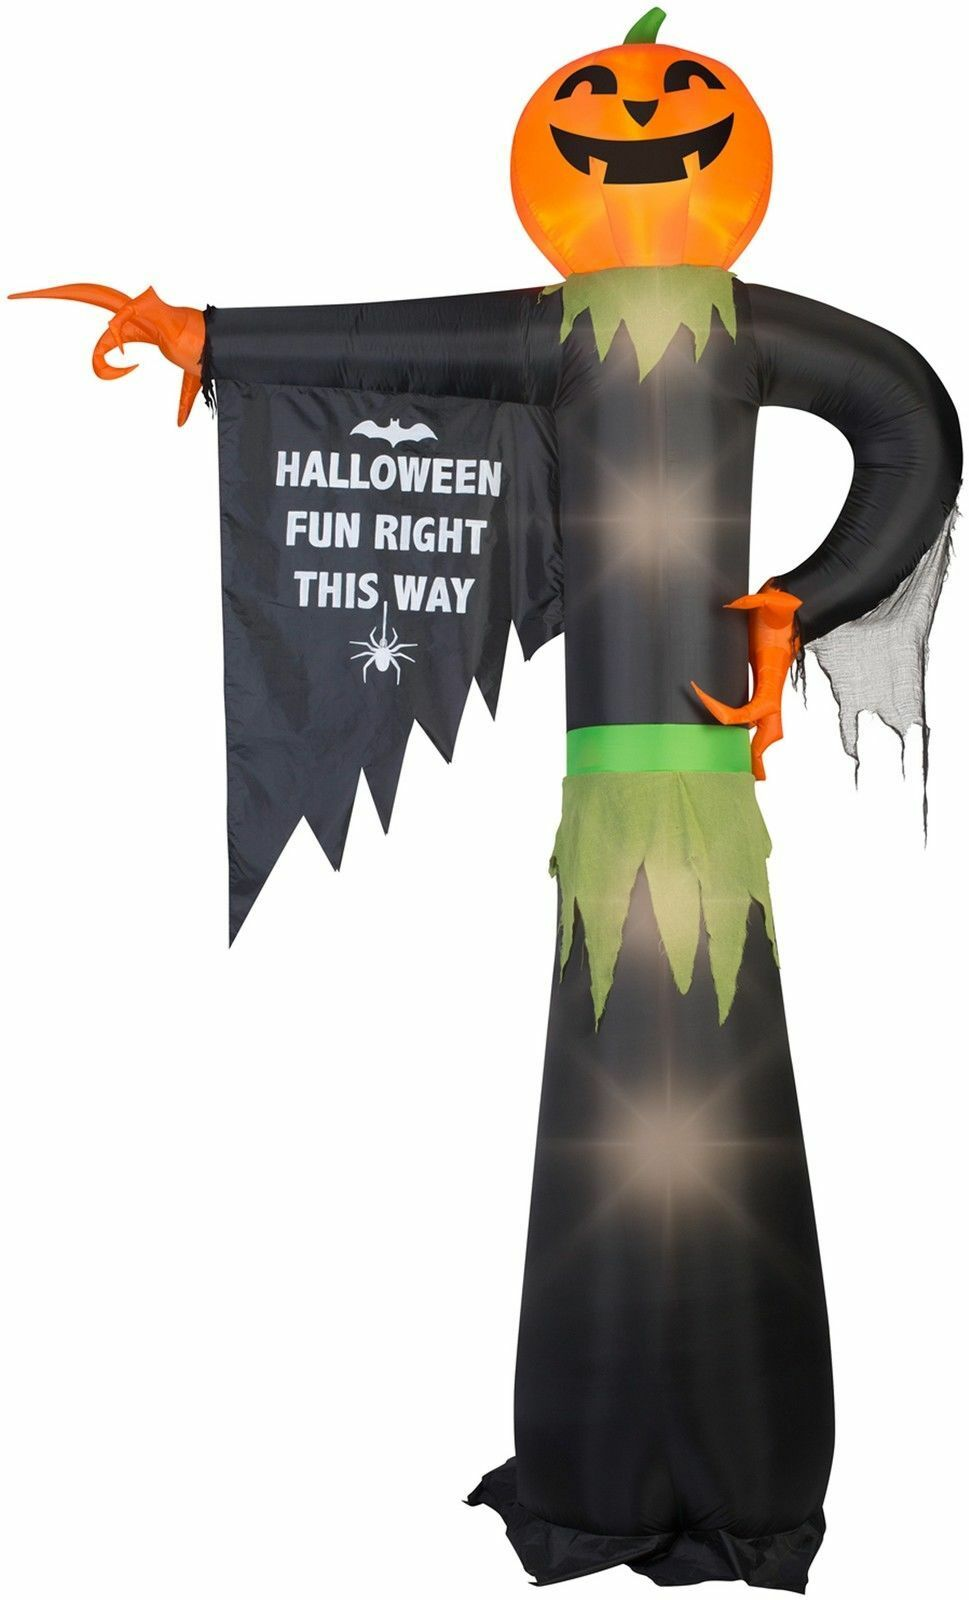 12' Airblown Inflatable Pumpkin Reaper Pointing W Halloween Sign Hallowen Decor